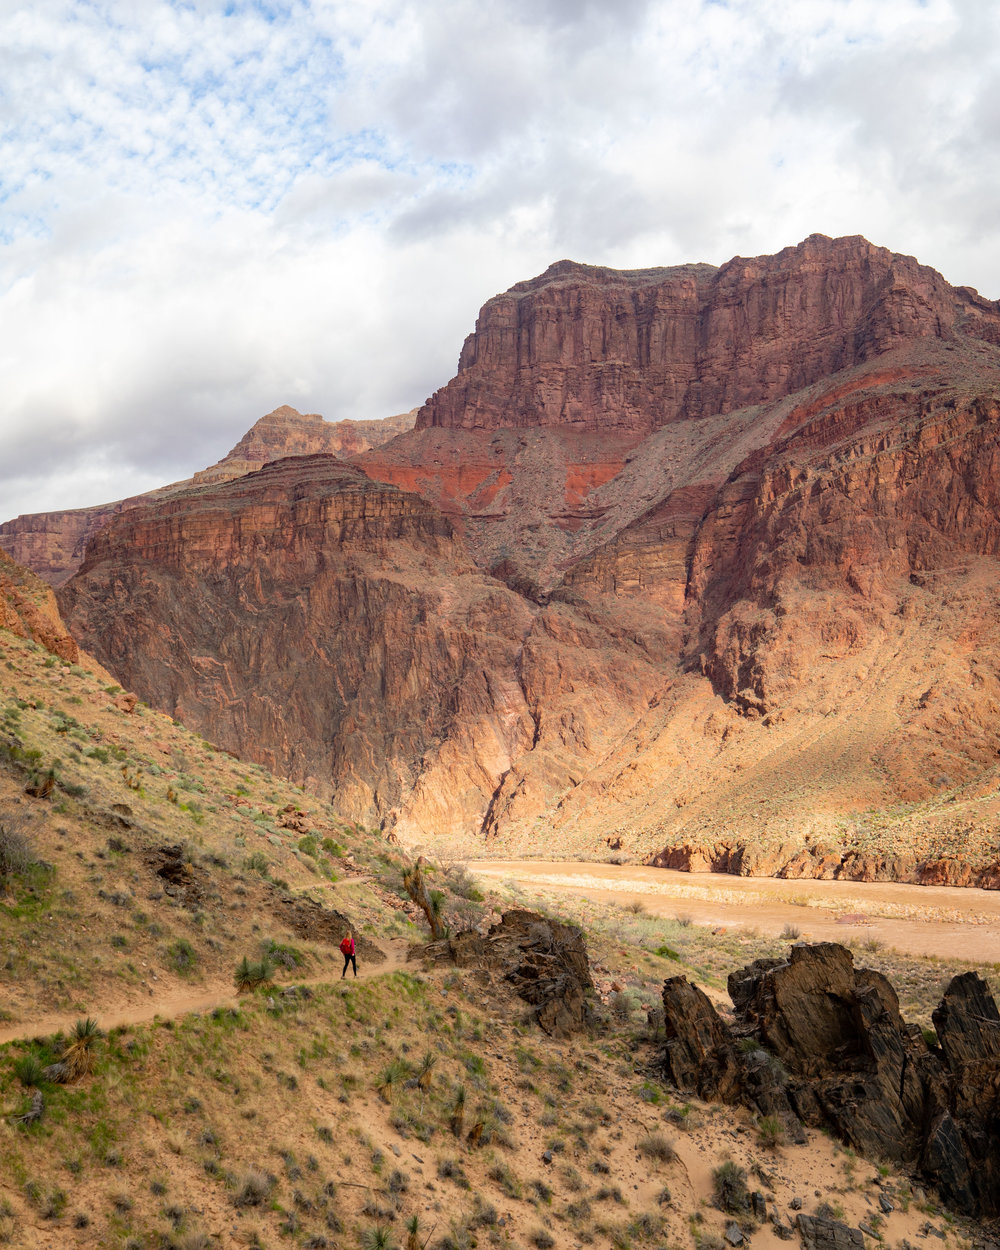 The riverside section of the Bright Angel Trail